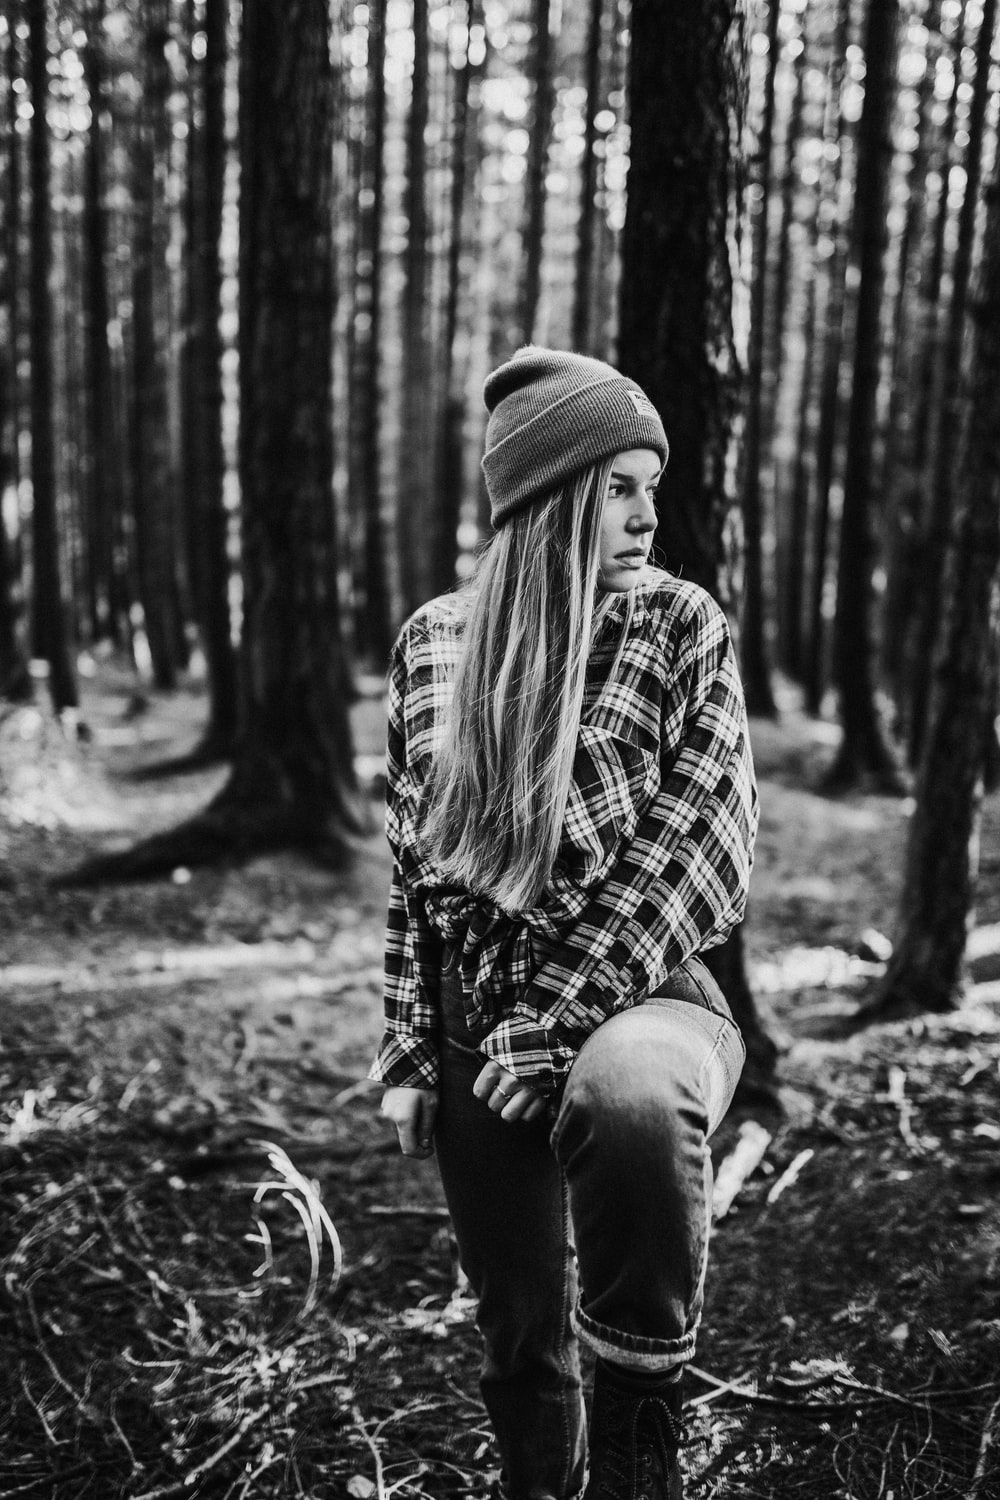 grayscale photo of woman in plaid shirt and denim jeans sitting on ground